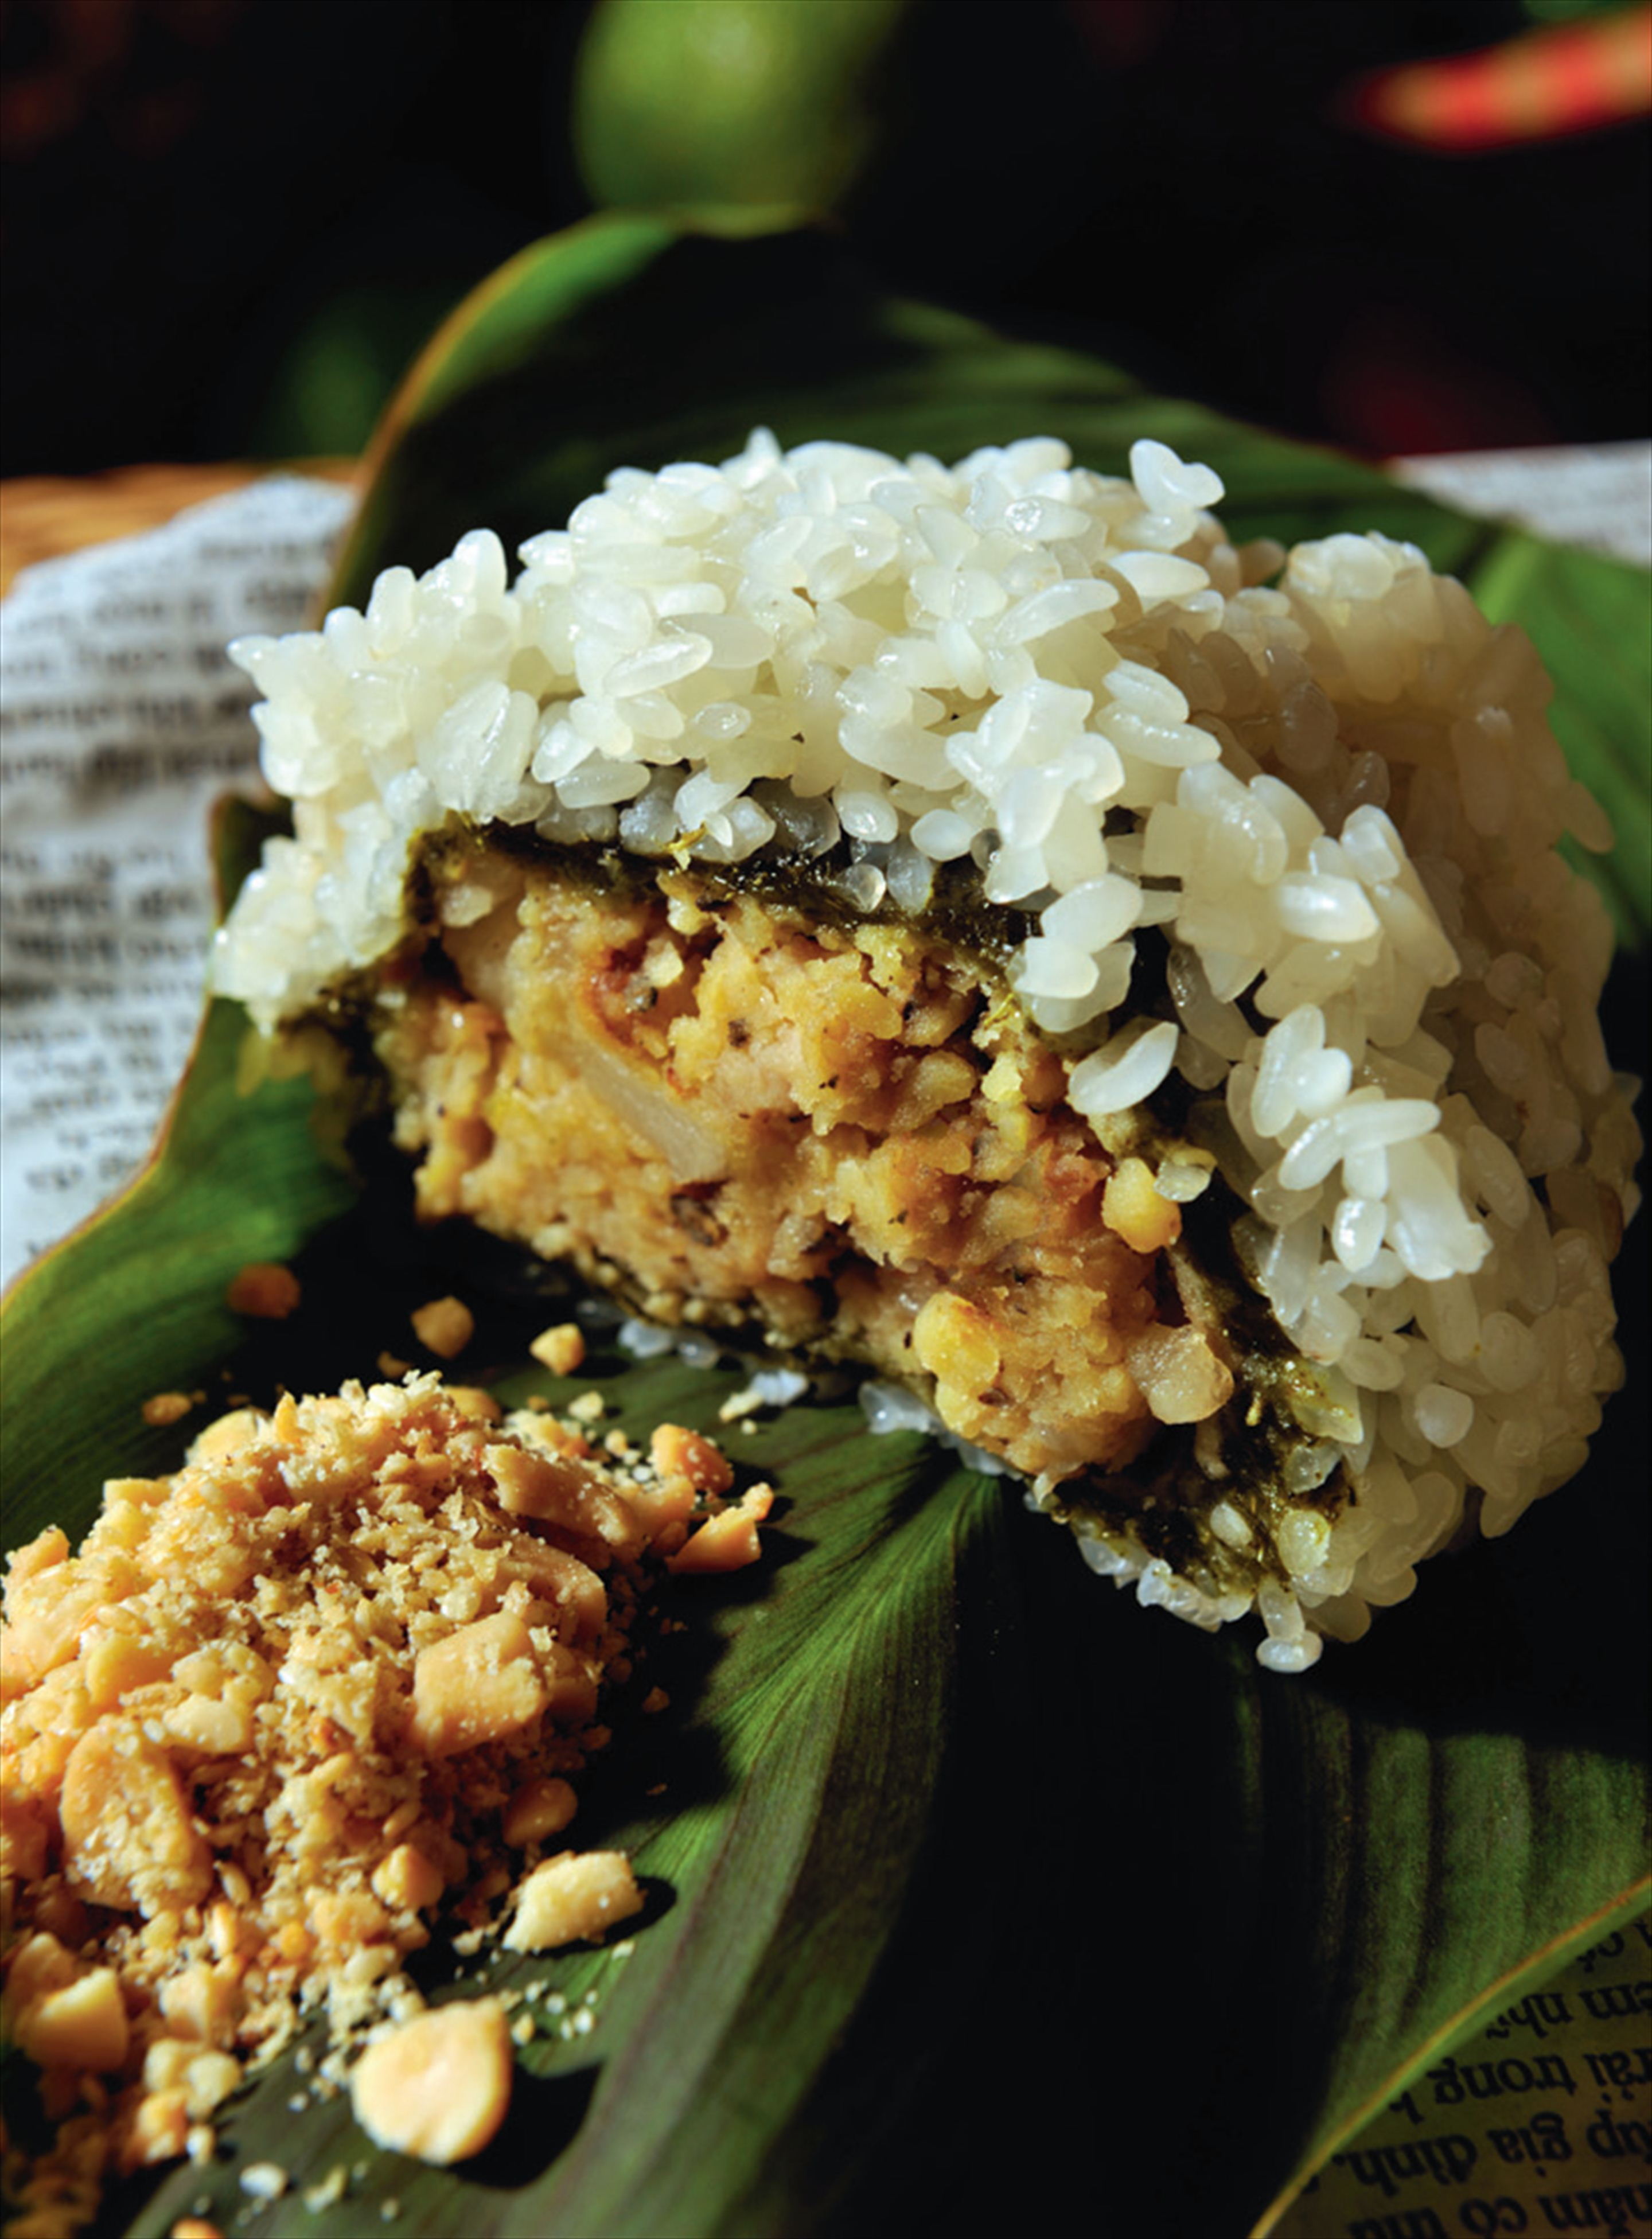 Sticky rice from the countryside with pork and mung beans